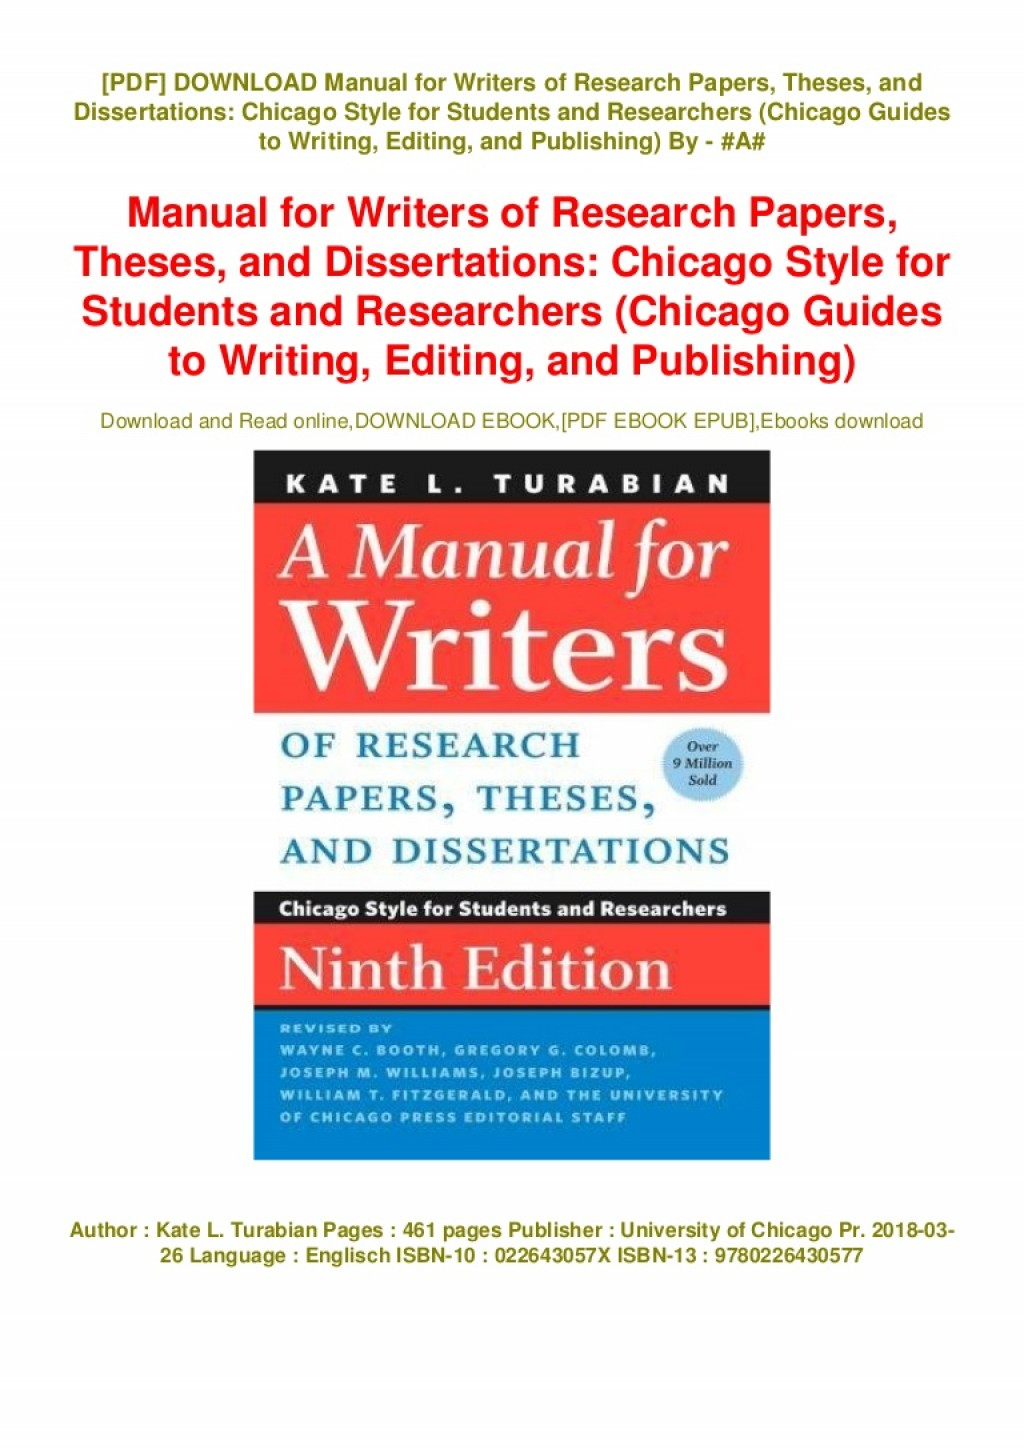 012 Manualr Writers Of Research Papers Theses And Dissertations Chicago Style Students Paper Download Rare A Manual For Large